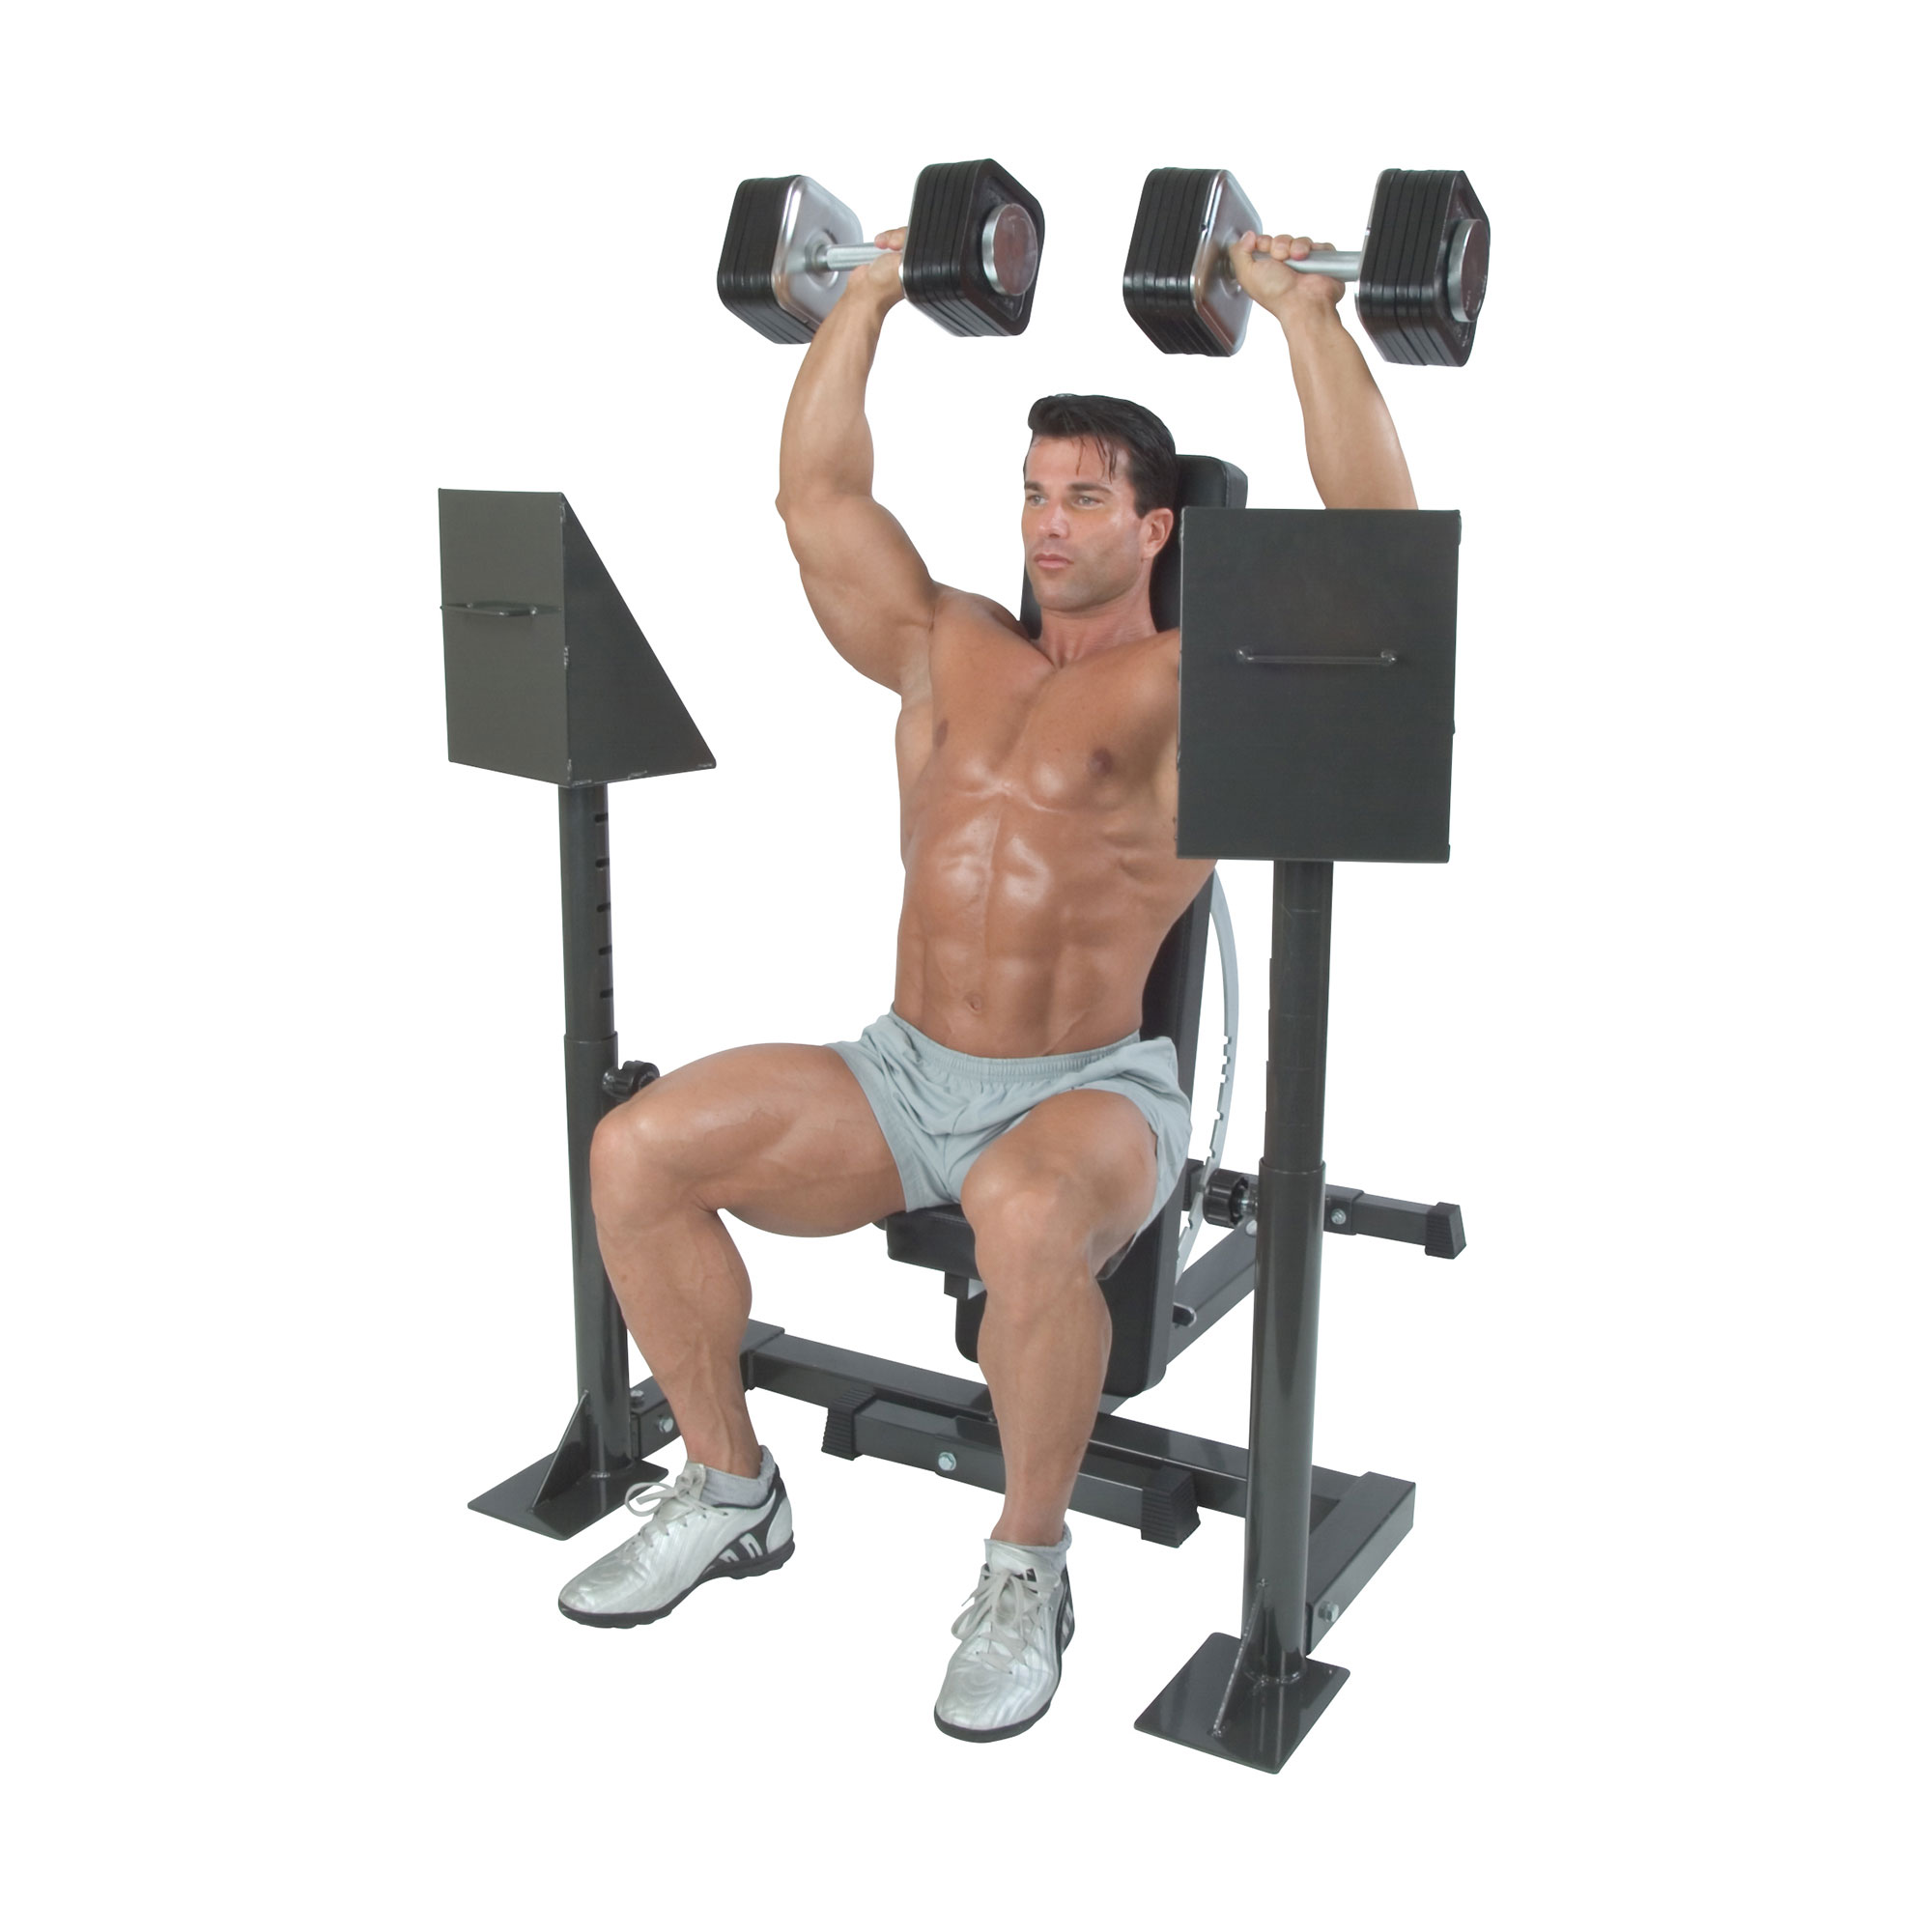 IronmasterUK Spotting stand shoulder press